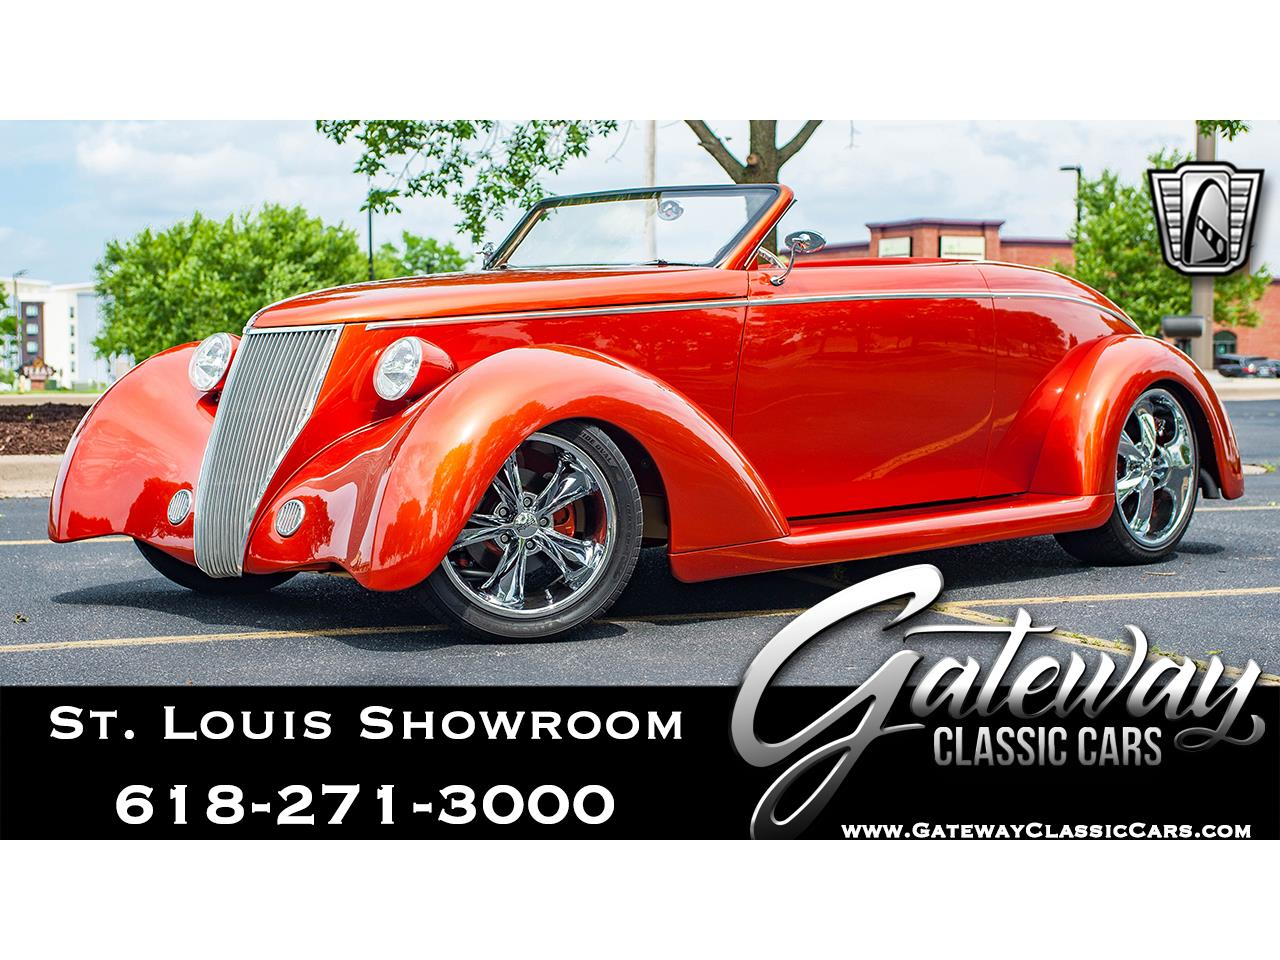 Large Picture of Classic 1936 Ford Roadster located in O'Fallon Illinois - $117,000.00 Offered by Gateway Classic Cars - St. Louis - QB9T